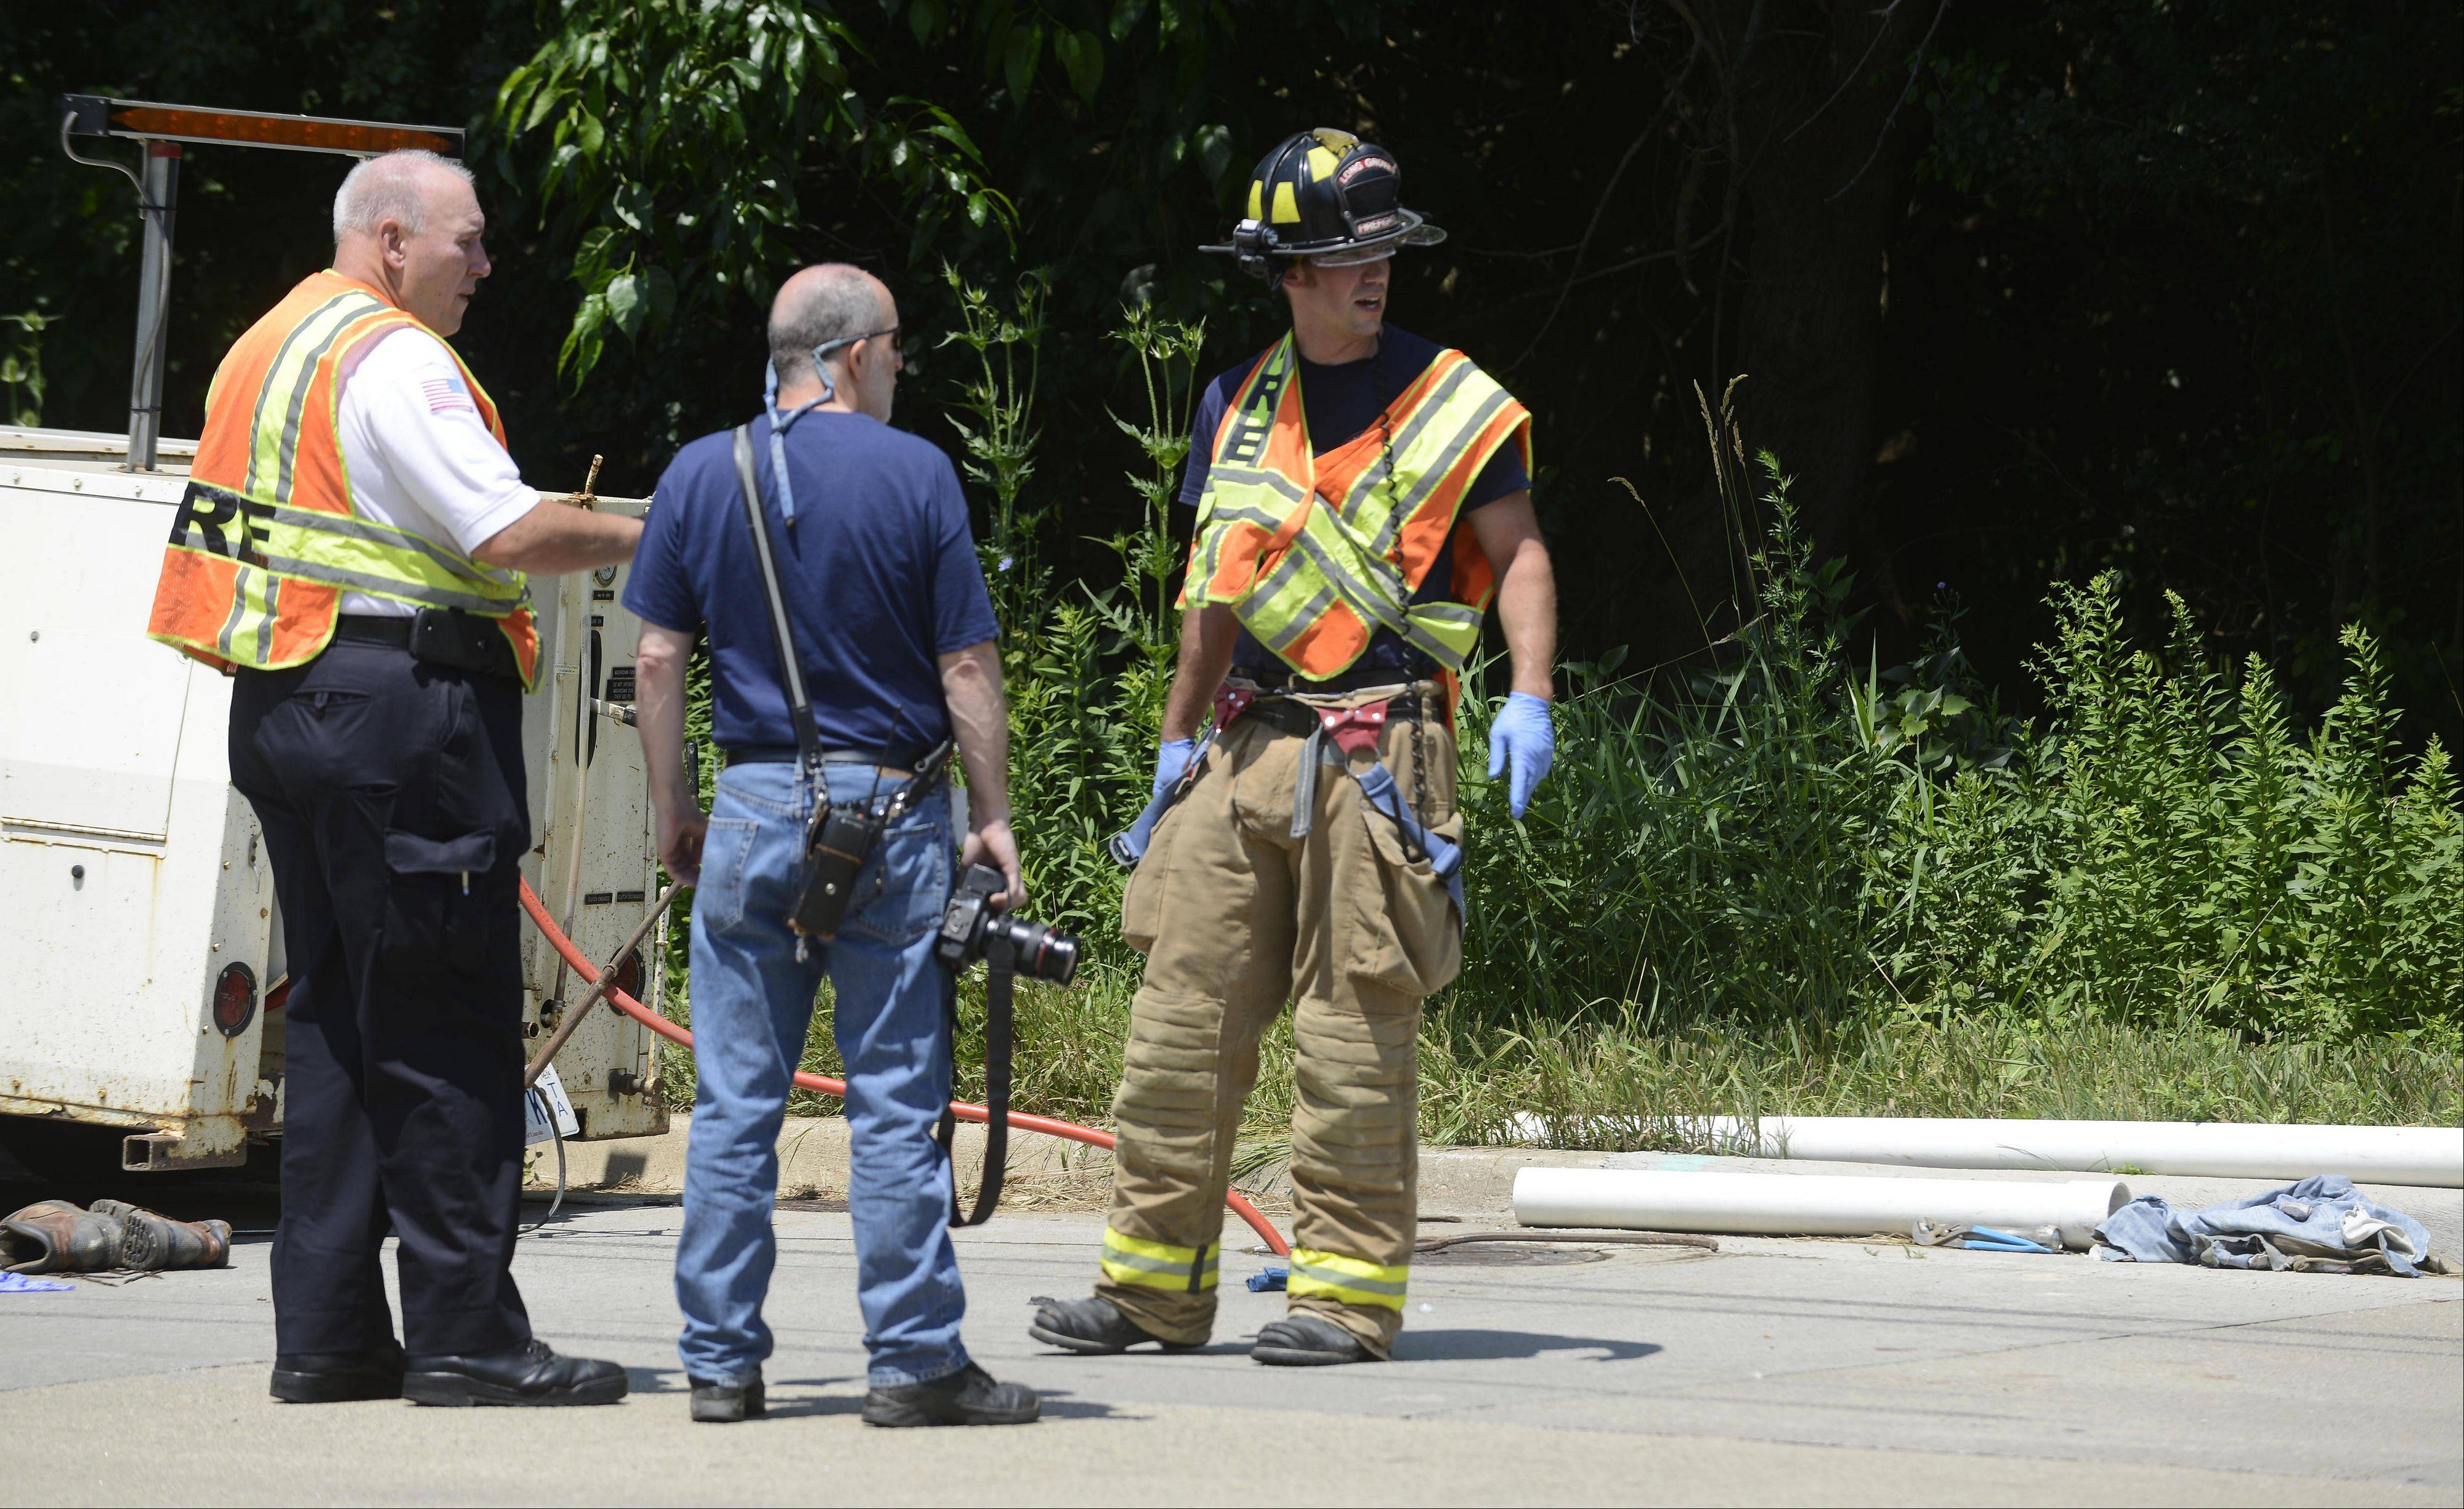 Members of the Long Grove Fire Protection District stand at the scene where two people were rescued from a 12-foot-deep manhole in Long Grove.